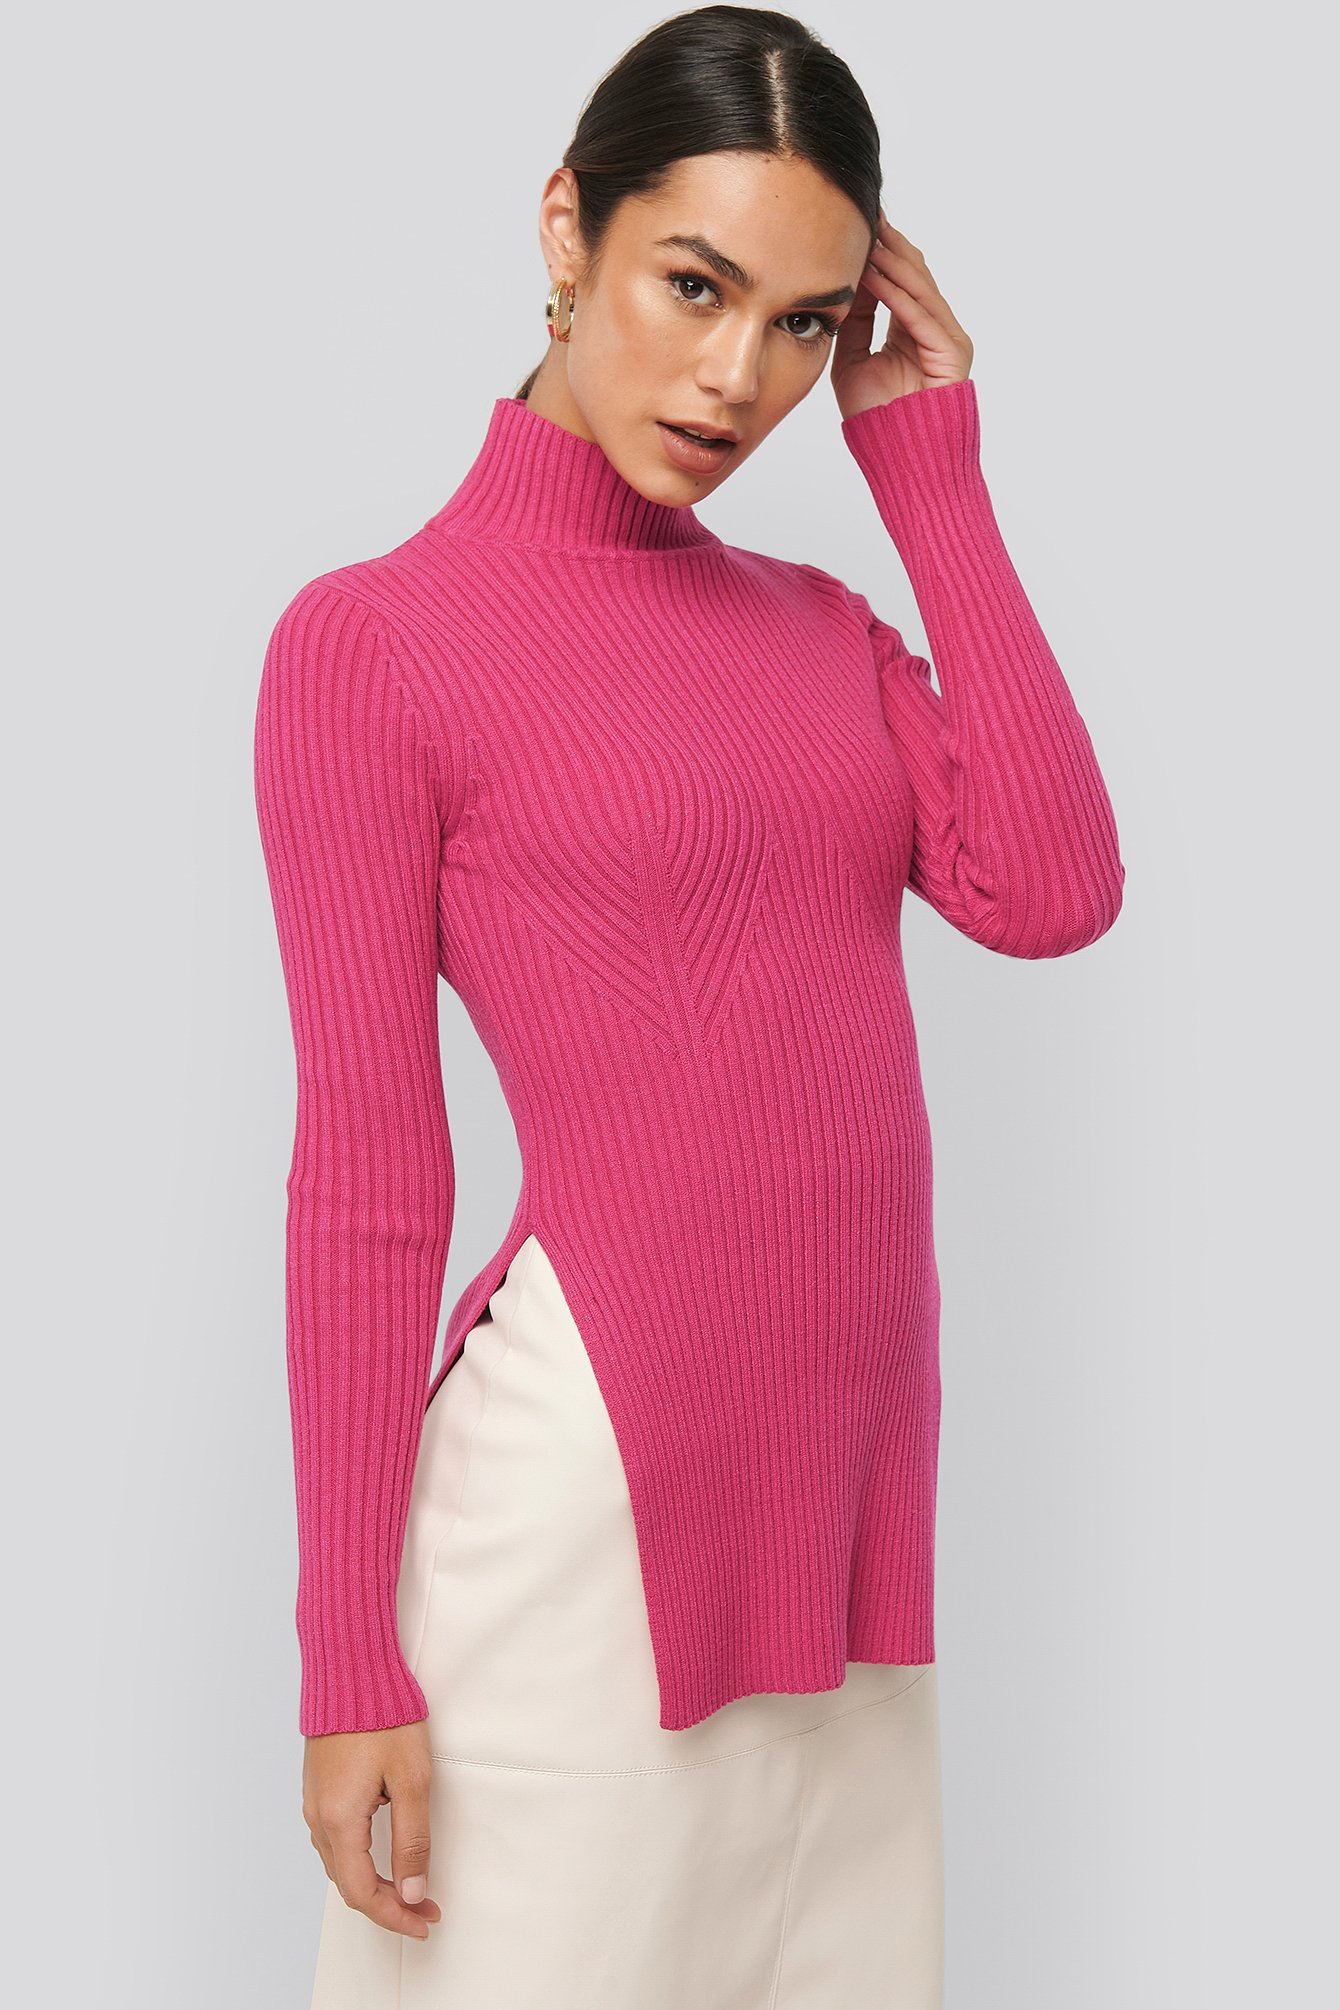 NA-KD Knitted Side Slit Sweater - Pink